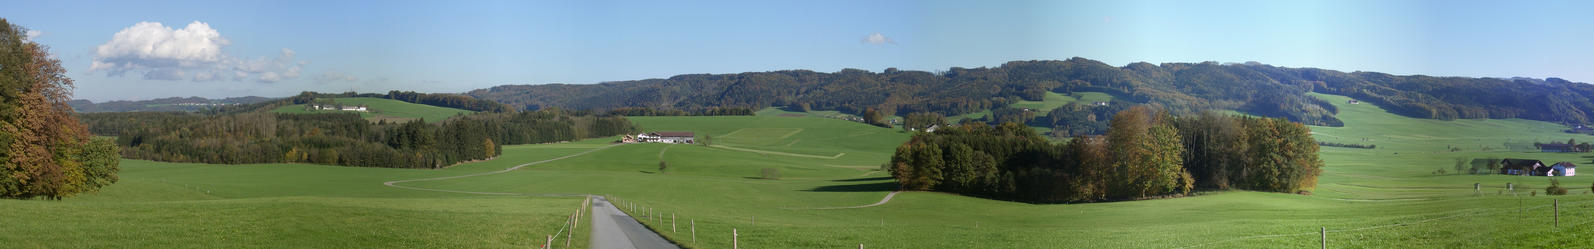 After leaving Riedlkam - view to east, to the village of Reitsberg